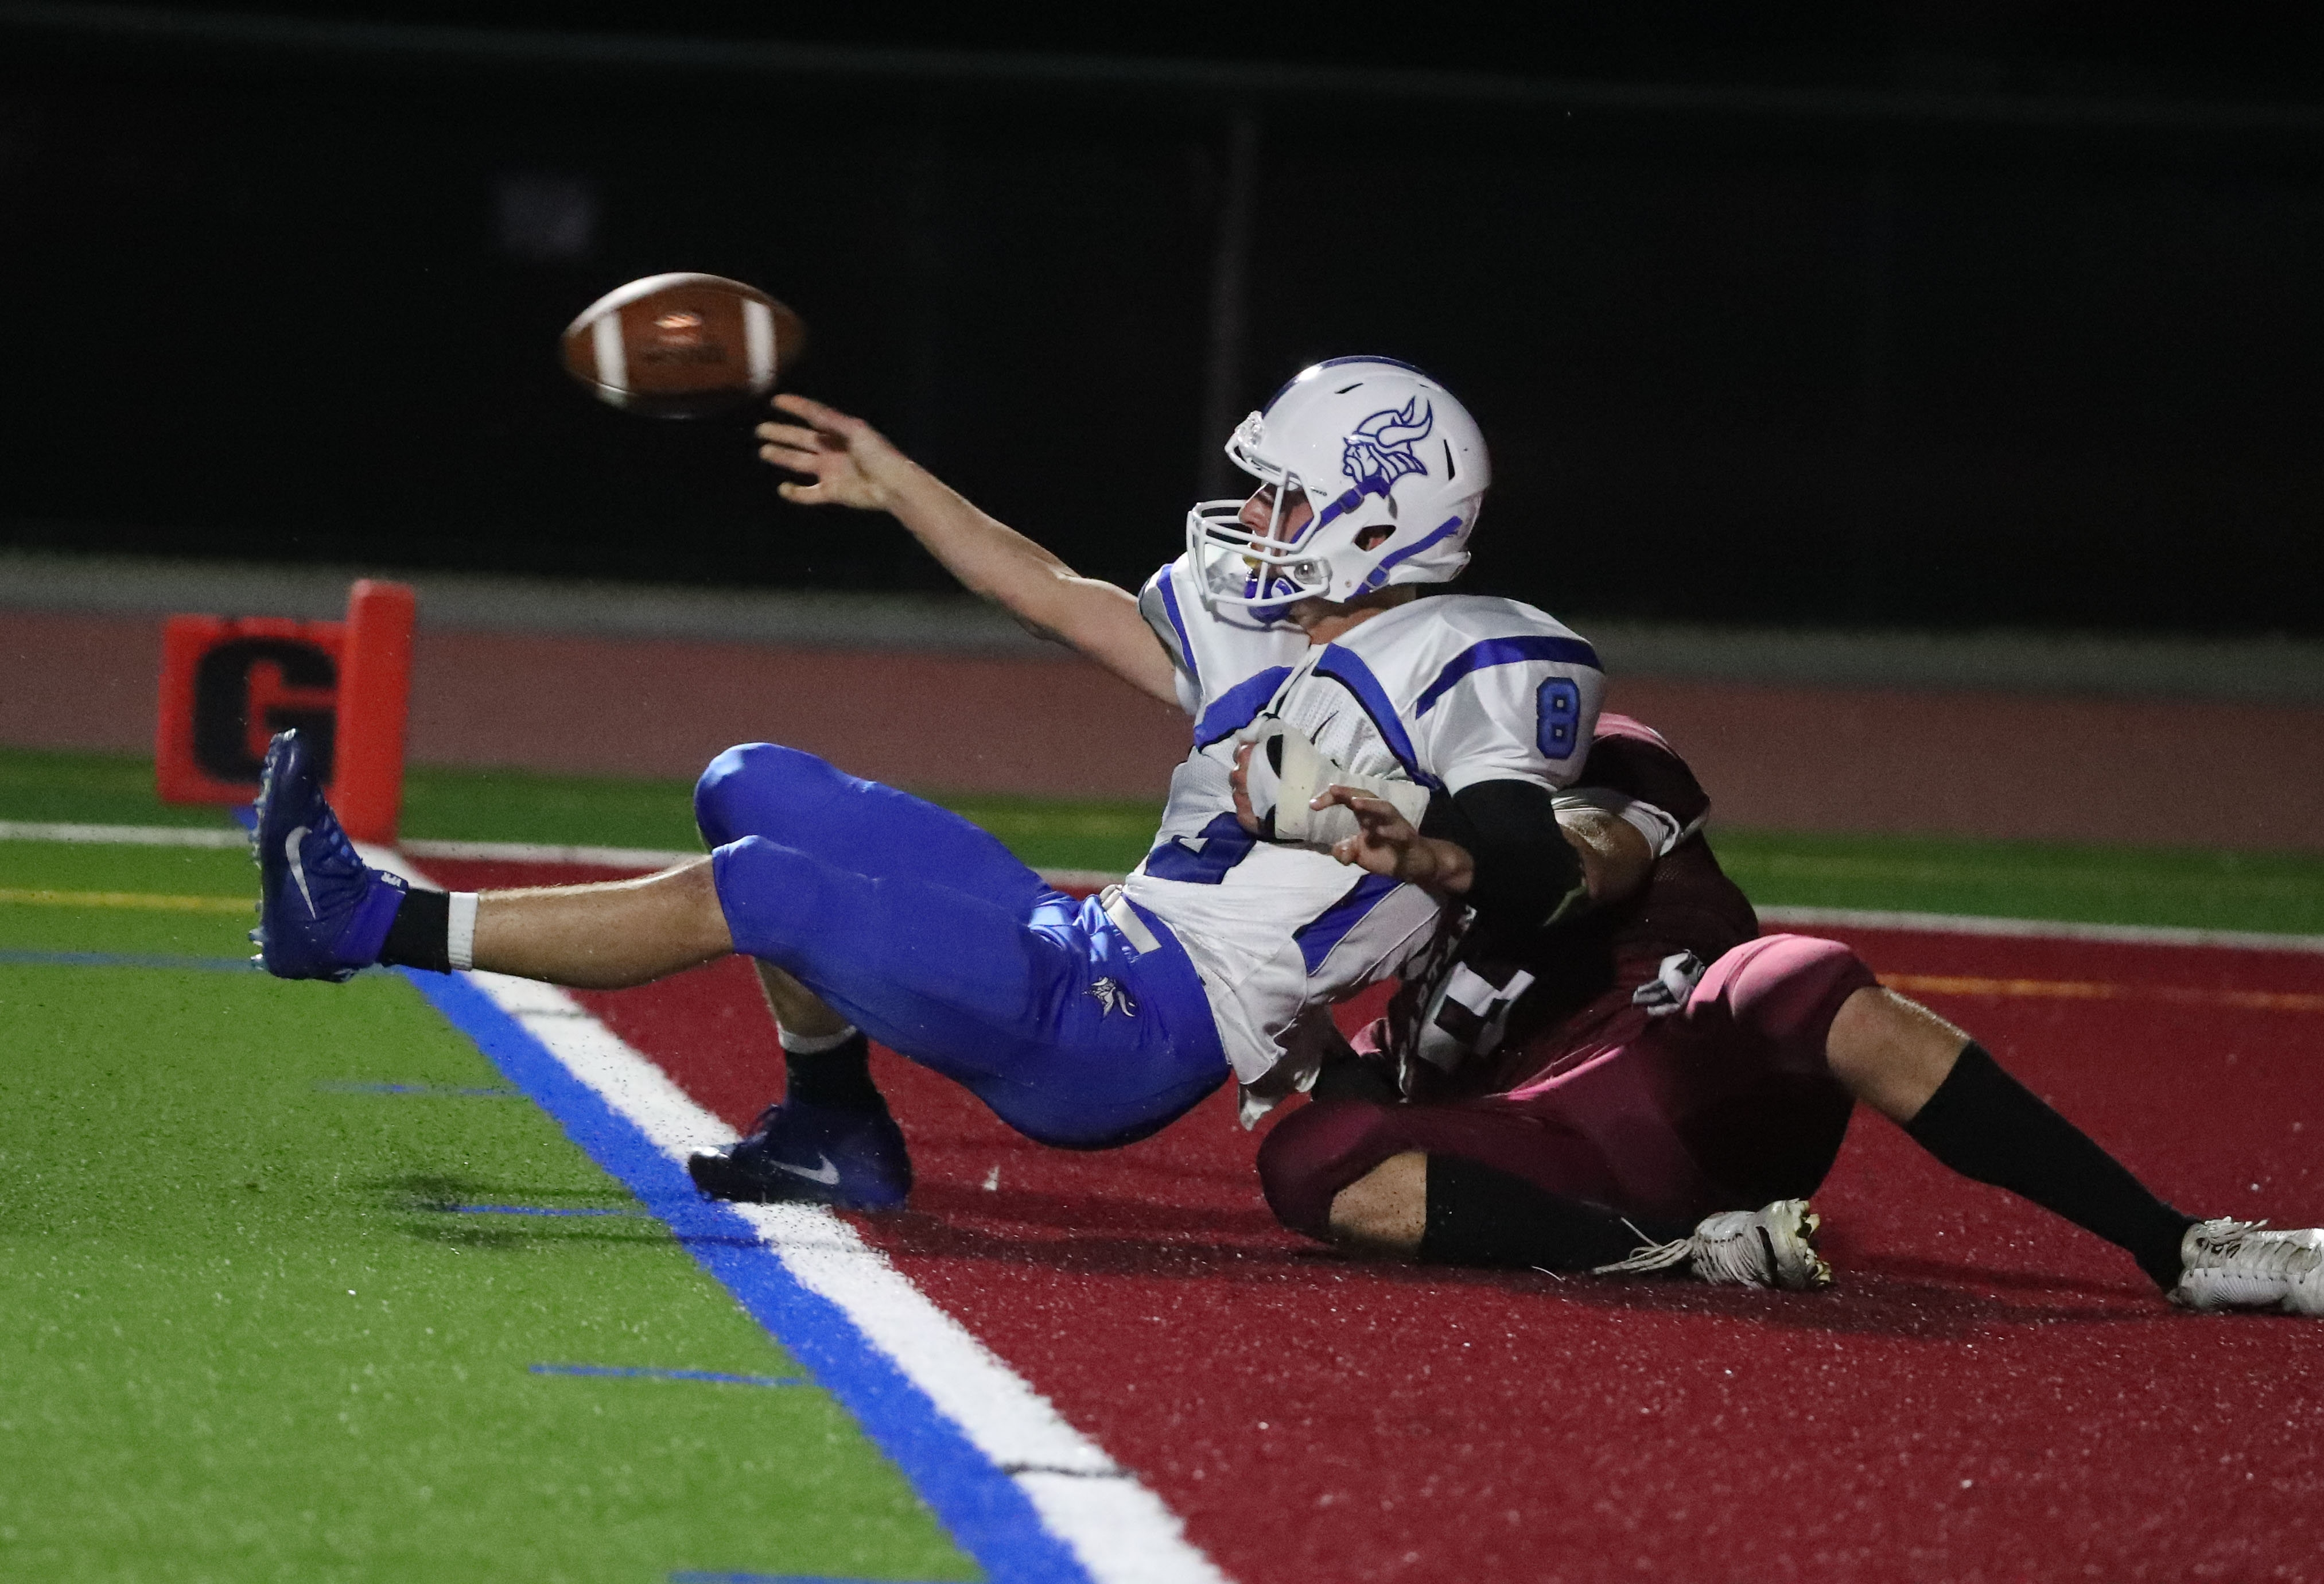 Austin Meenaghan of Starpoint takes down Grand Island quarterback Cam Sionko, who was whistled for intentional grounding, resulting in a safety in the second quarter.